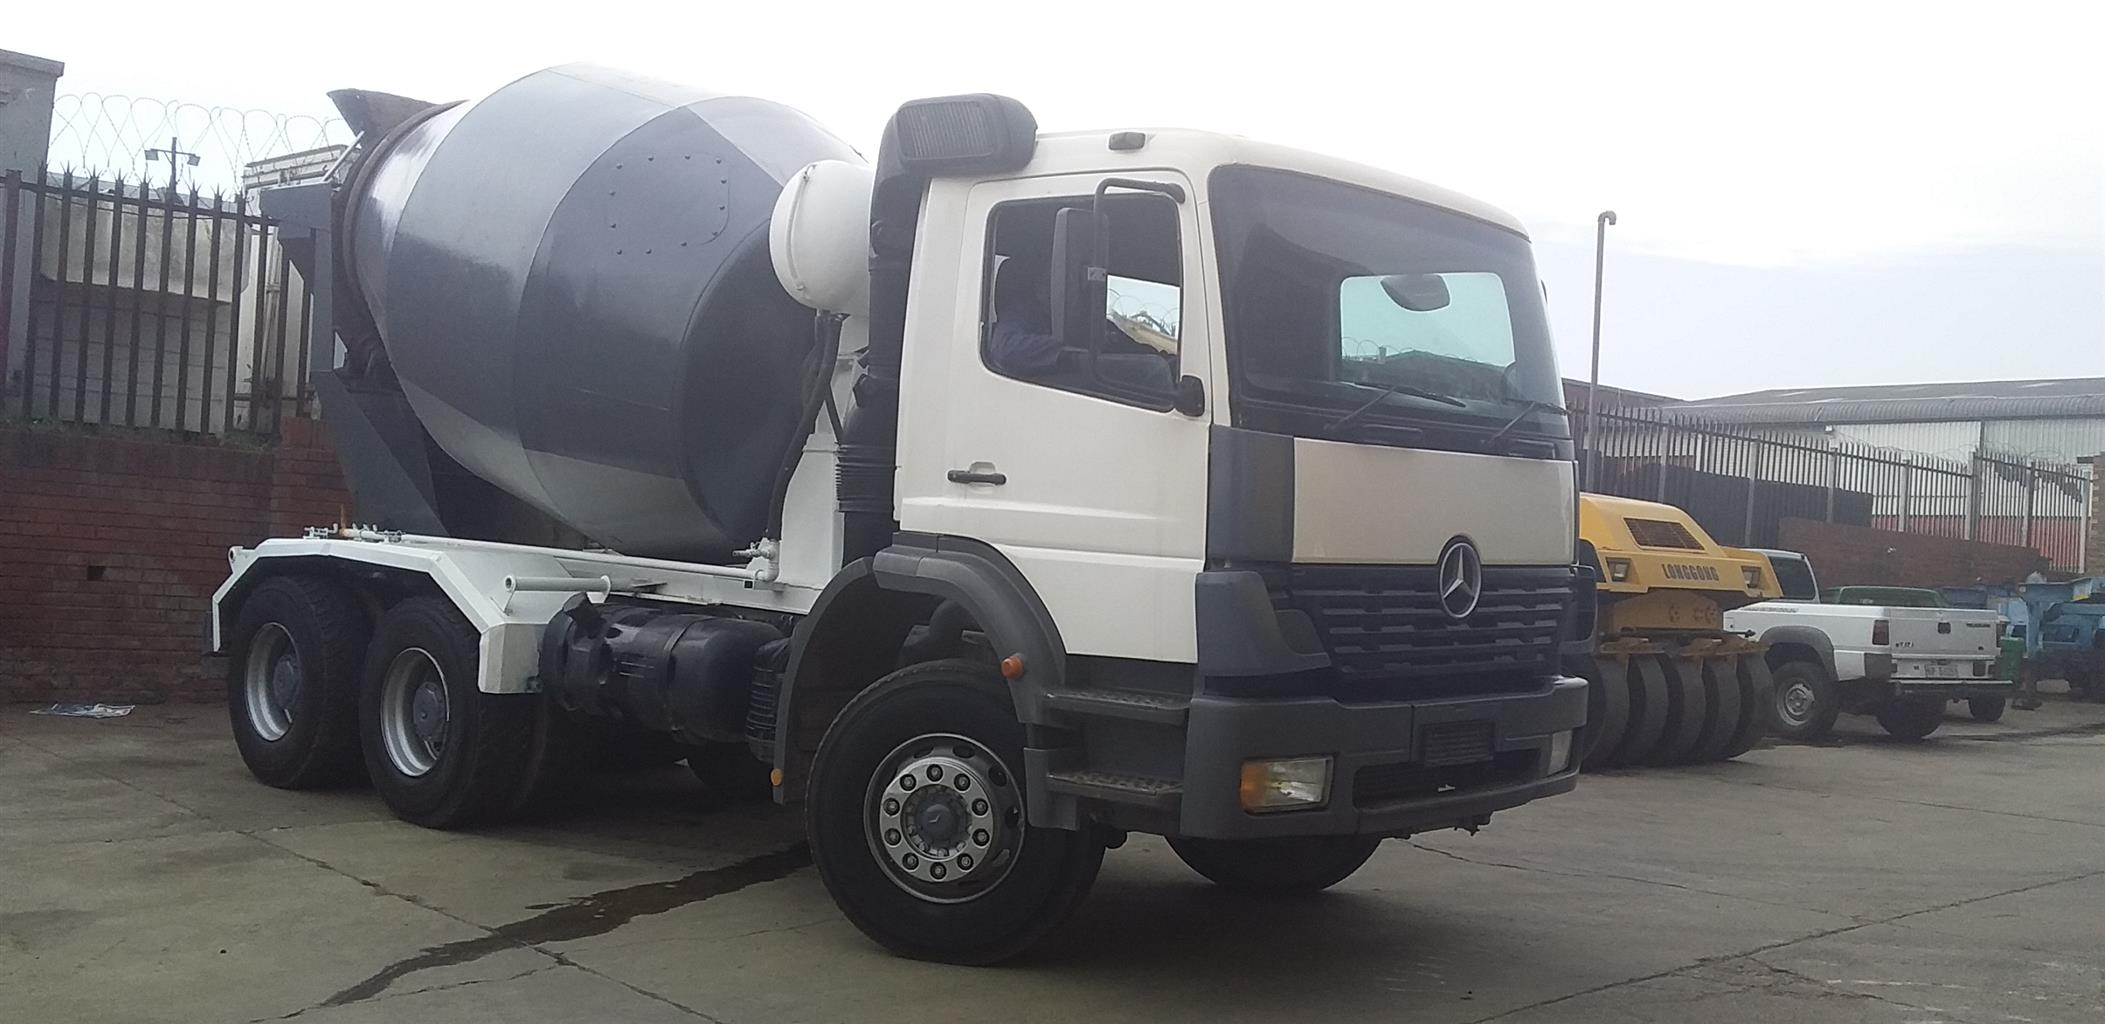 2003 MERCEDES BENZ CONCRETE MIXER